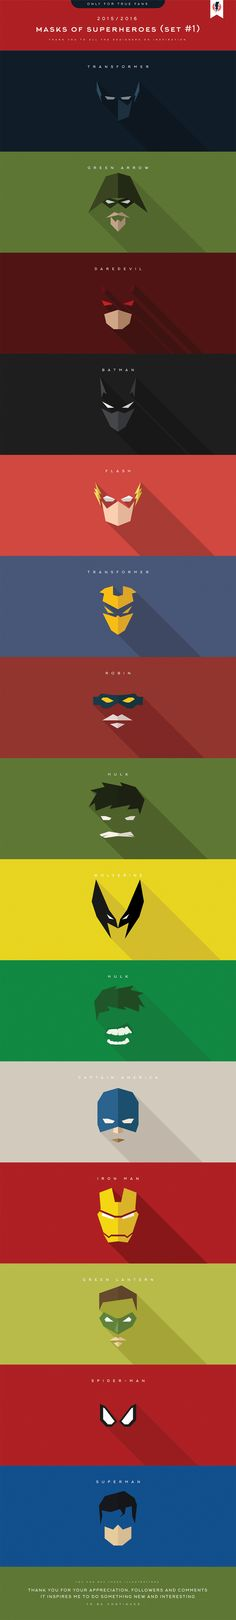 Minimalist Superhero Mask Art #DCComics #Marvel